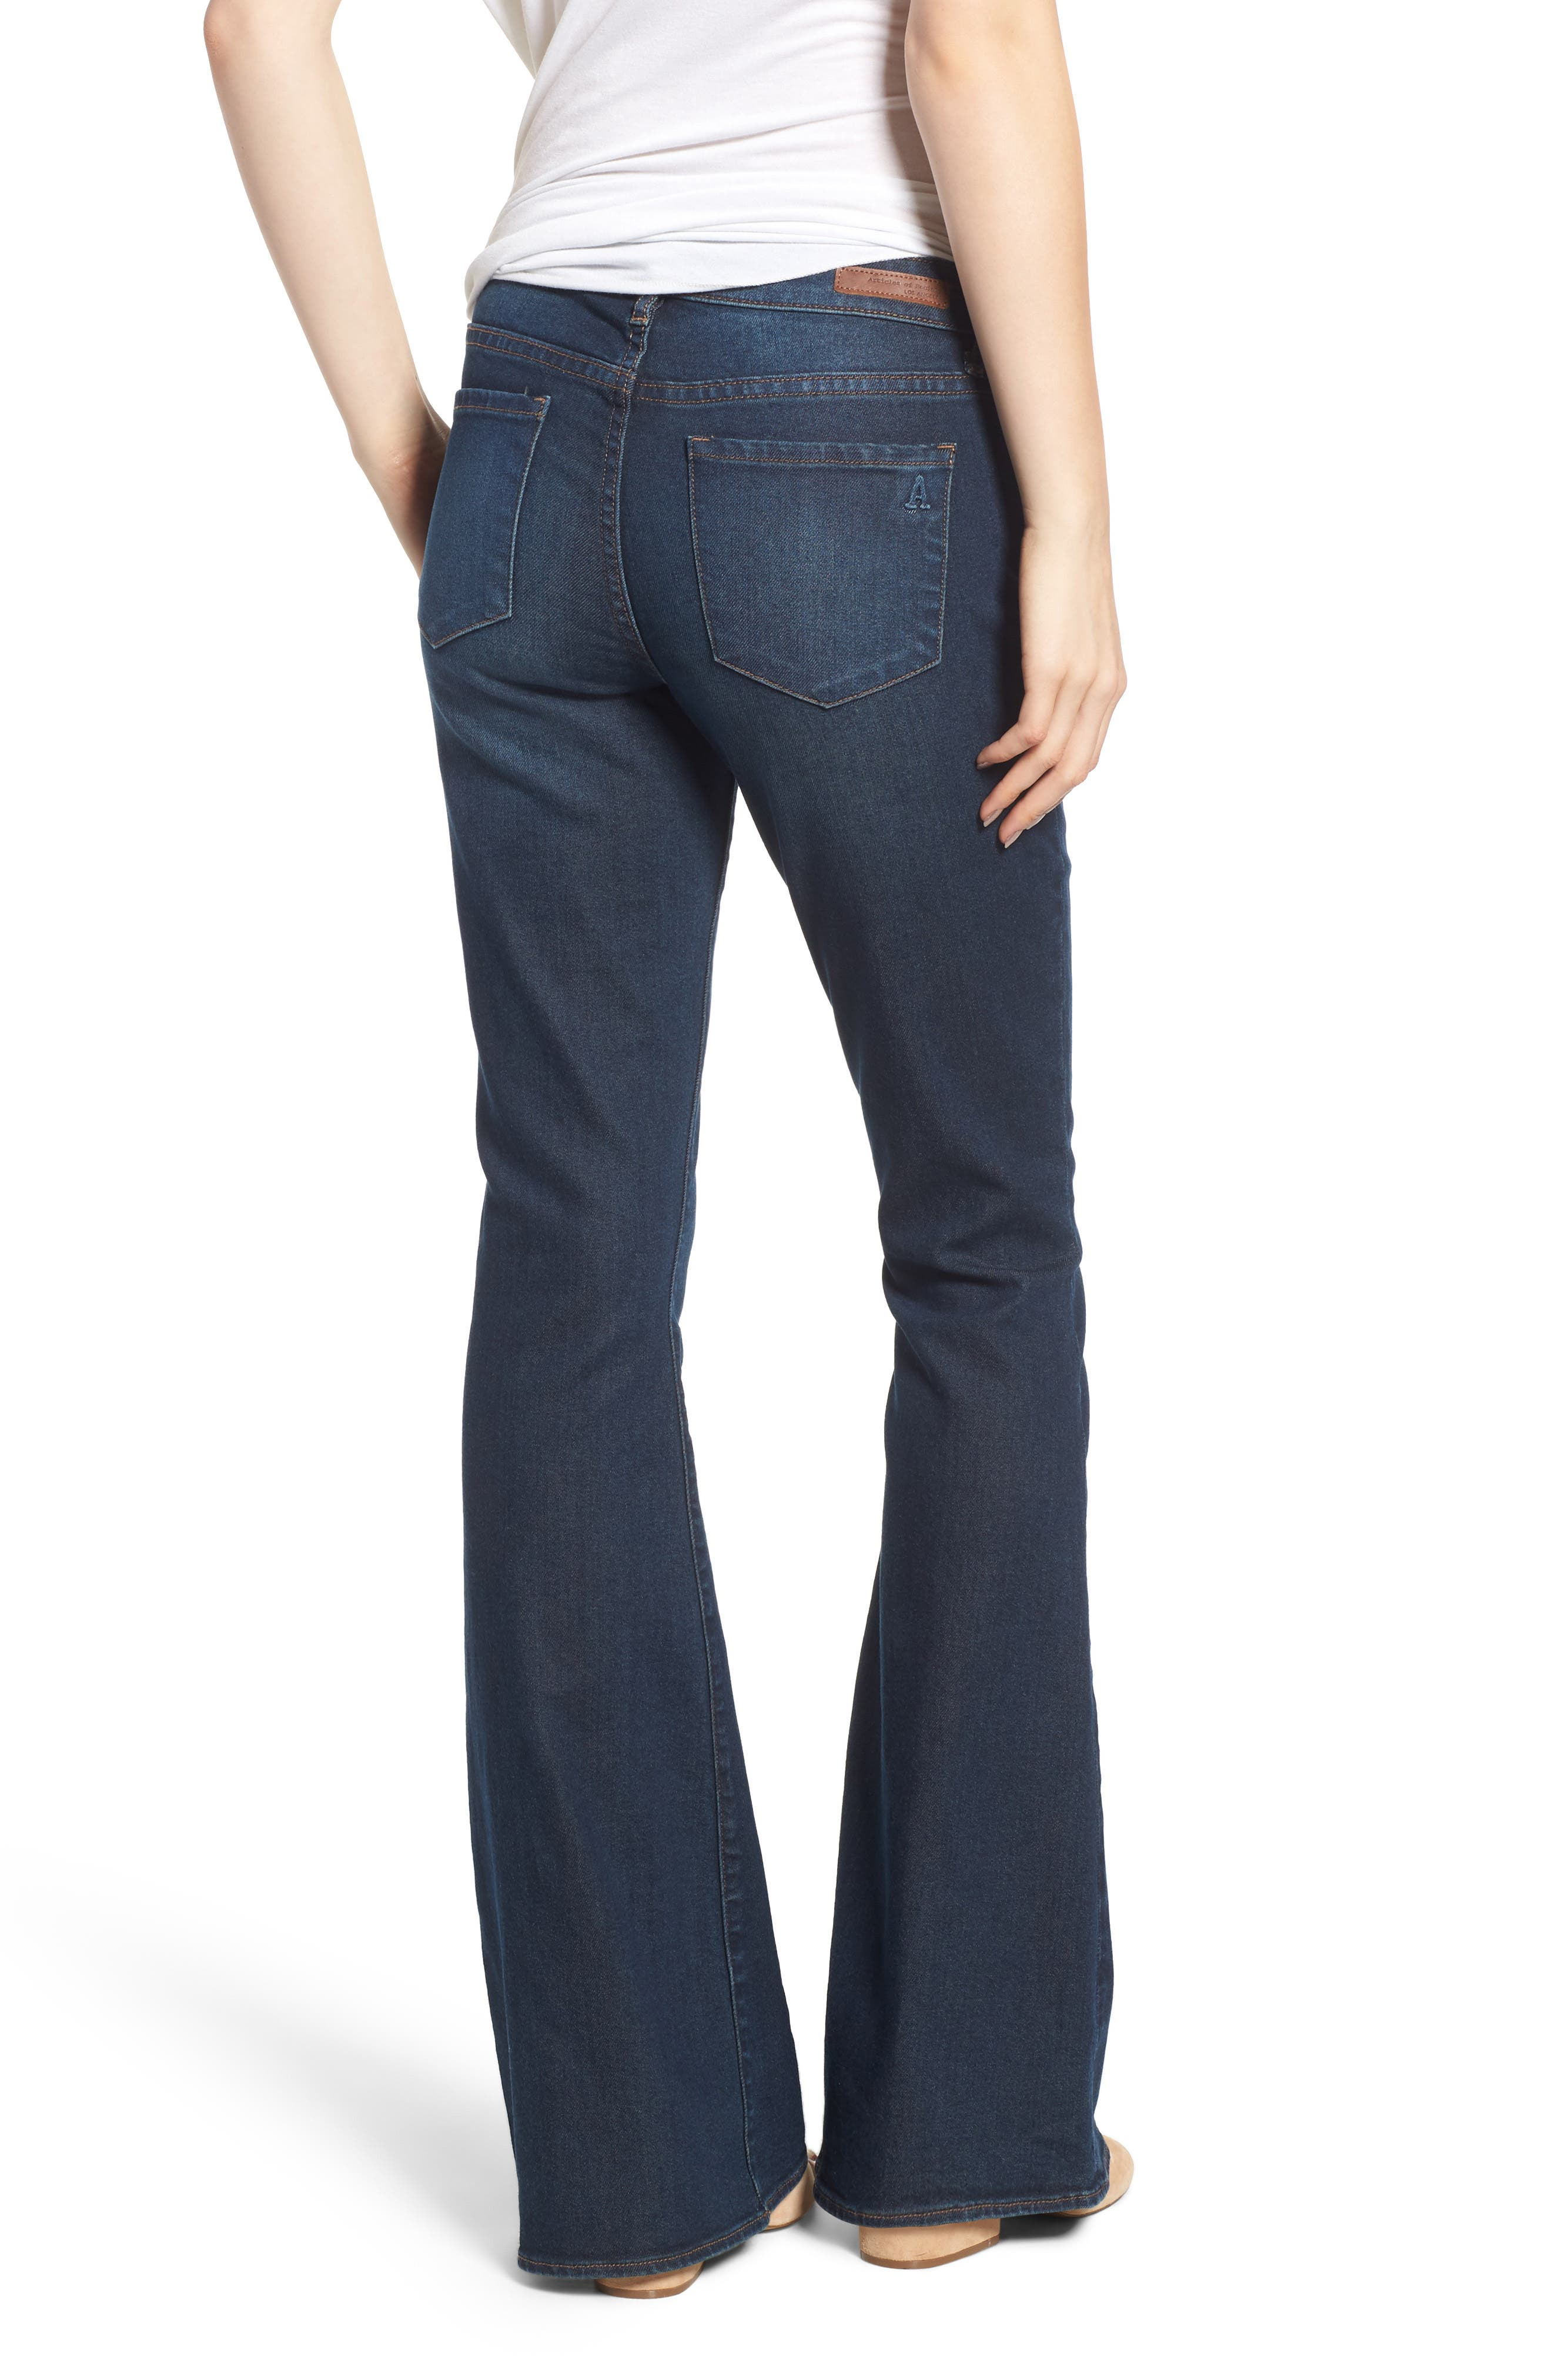 ARTICLES OF SOCIETY, Faith Flare Jeans, Alternate thumbnail 2, color, 467